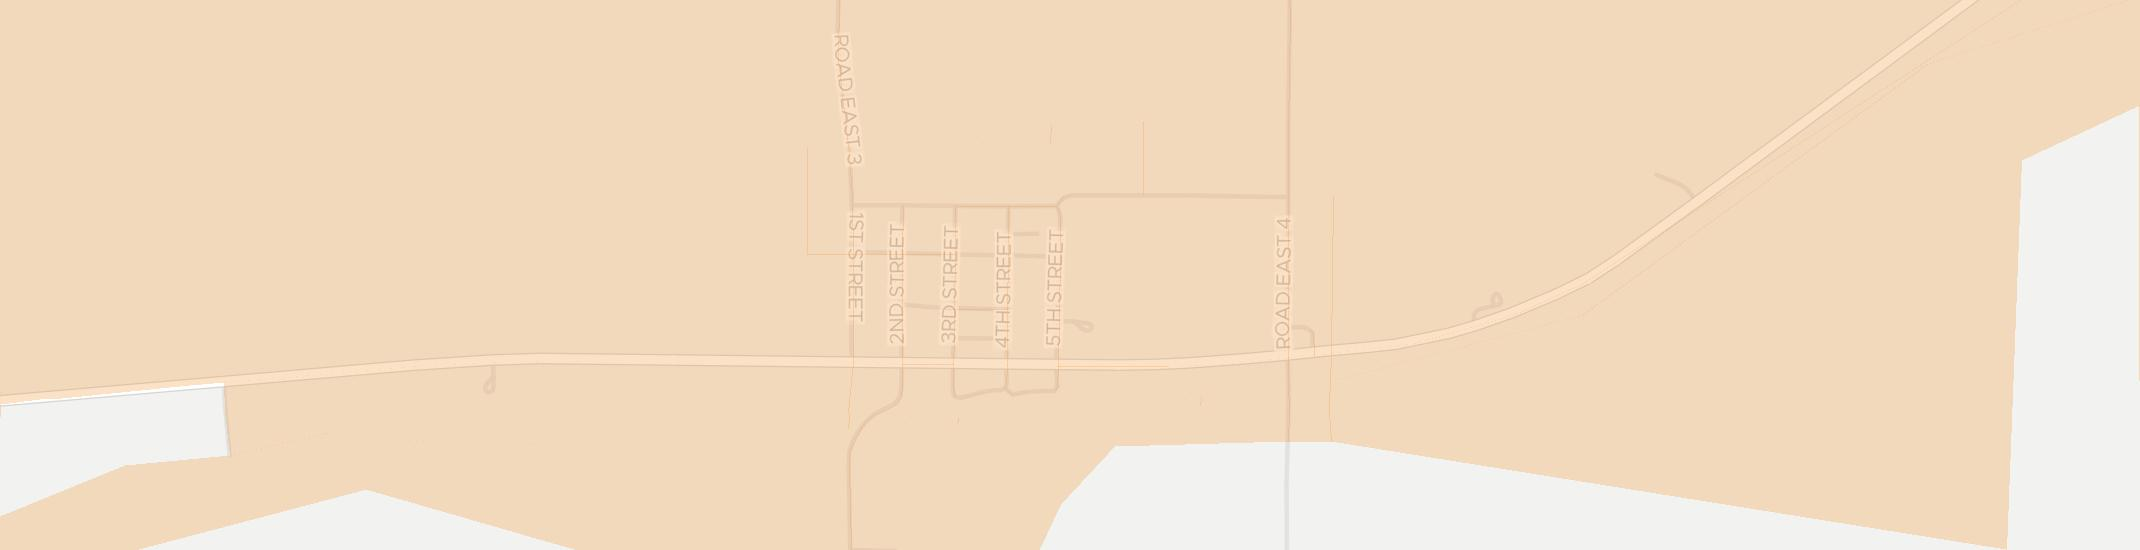 Edmond Internet Competition Map. Click for interactive map.